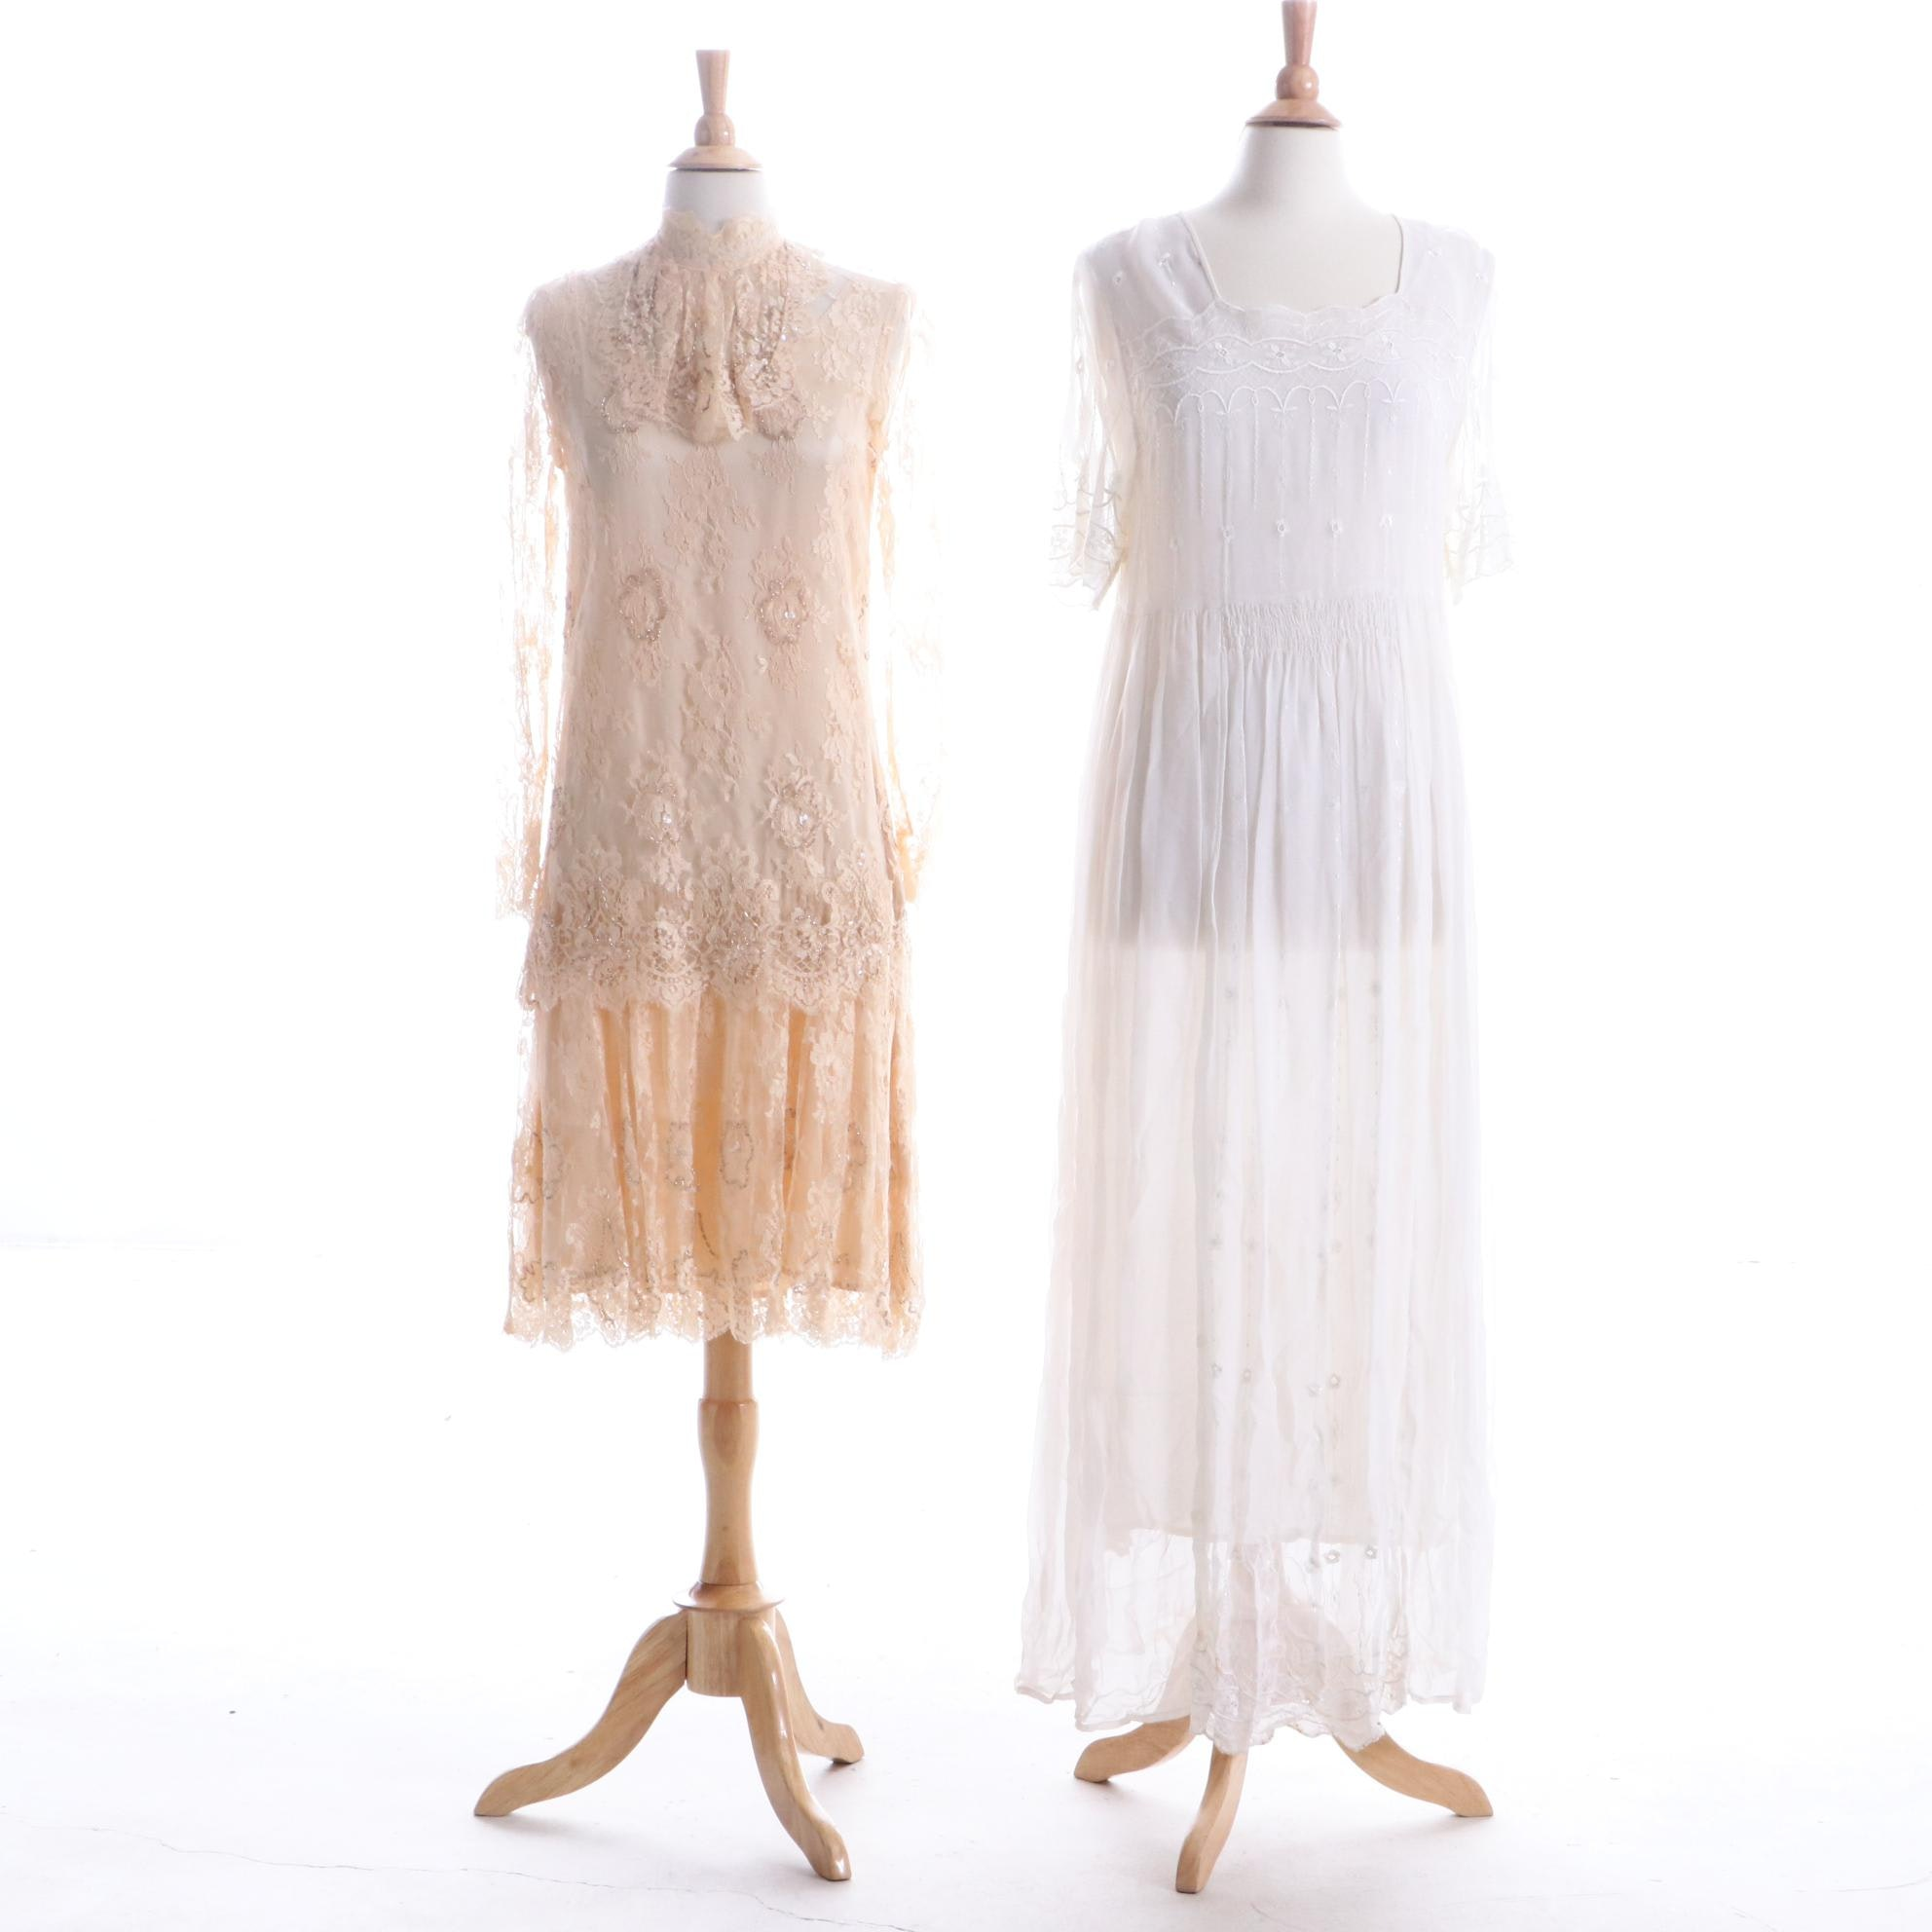 1980s Vintage Rina di Montella Beaded Silk Dress and Divine Sarah Rayon Dress